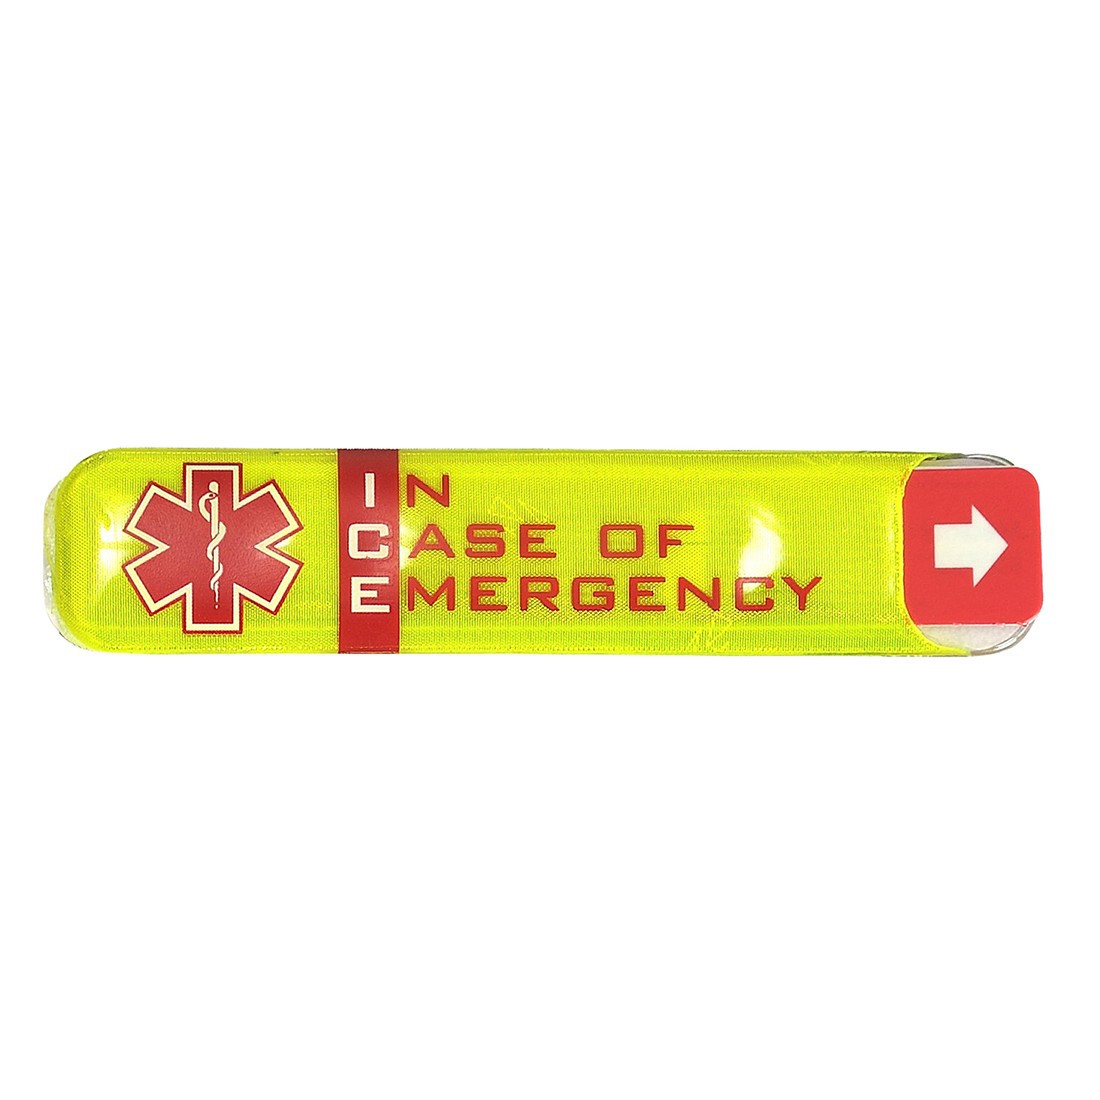 In Case of Emergency (ICE) stickers for accident victims gives on-site instant access to victims potential lifesaving information and enables emergency contacts be quickly notified of the situation 24/7.